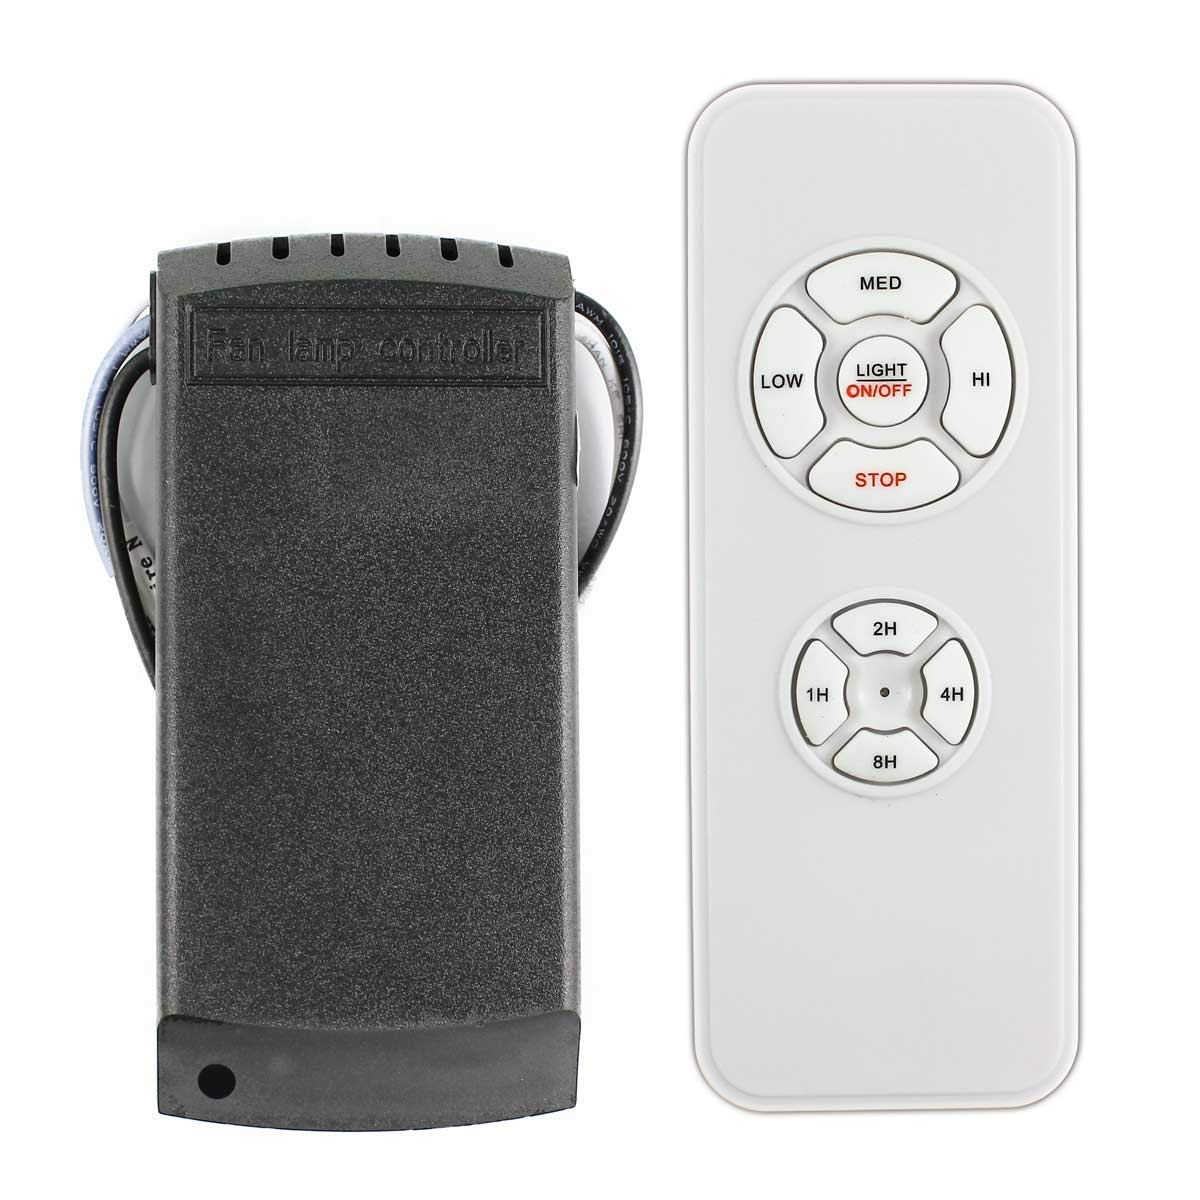 LPHUMEX Universal Ceiling Fan Remote Timing Wireless Control White by LPHUMEX